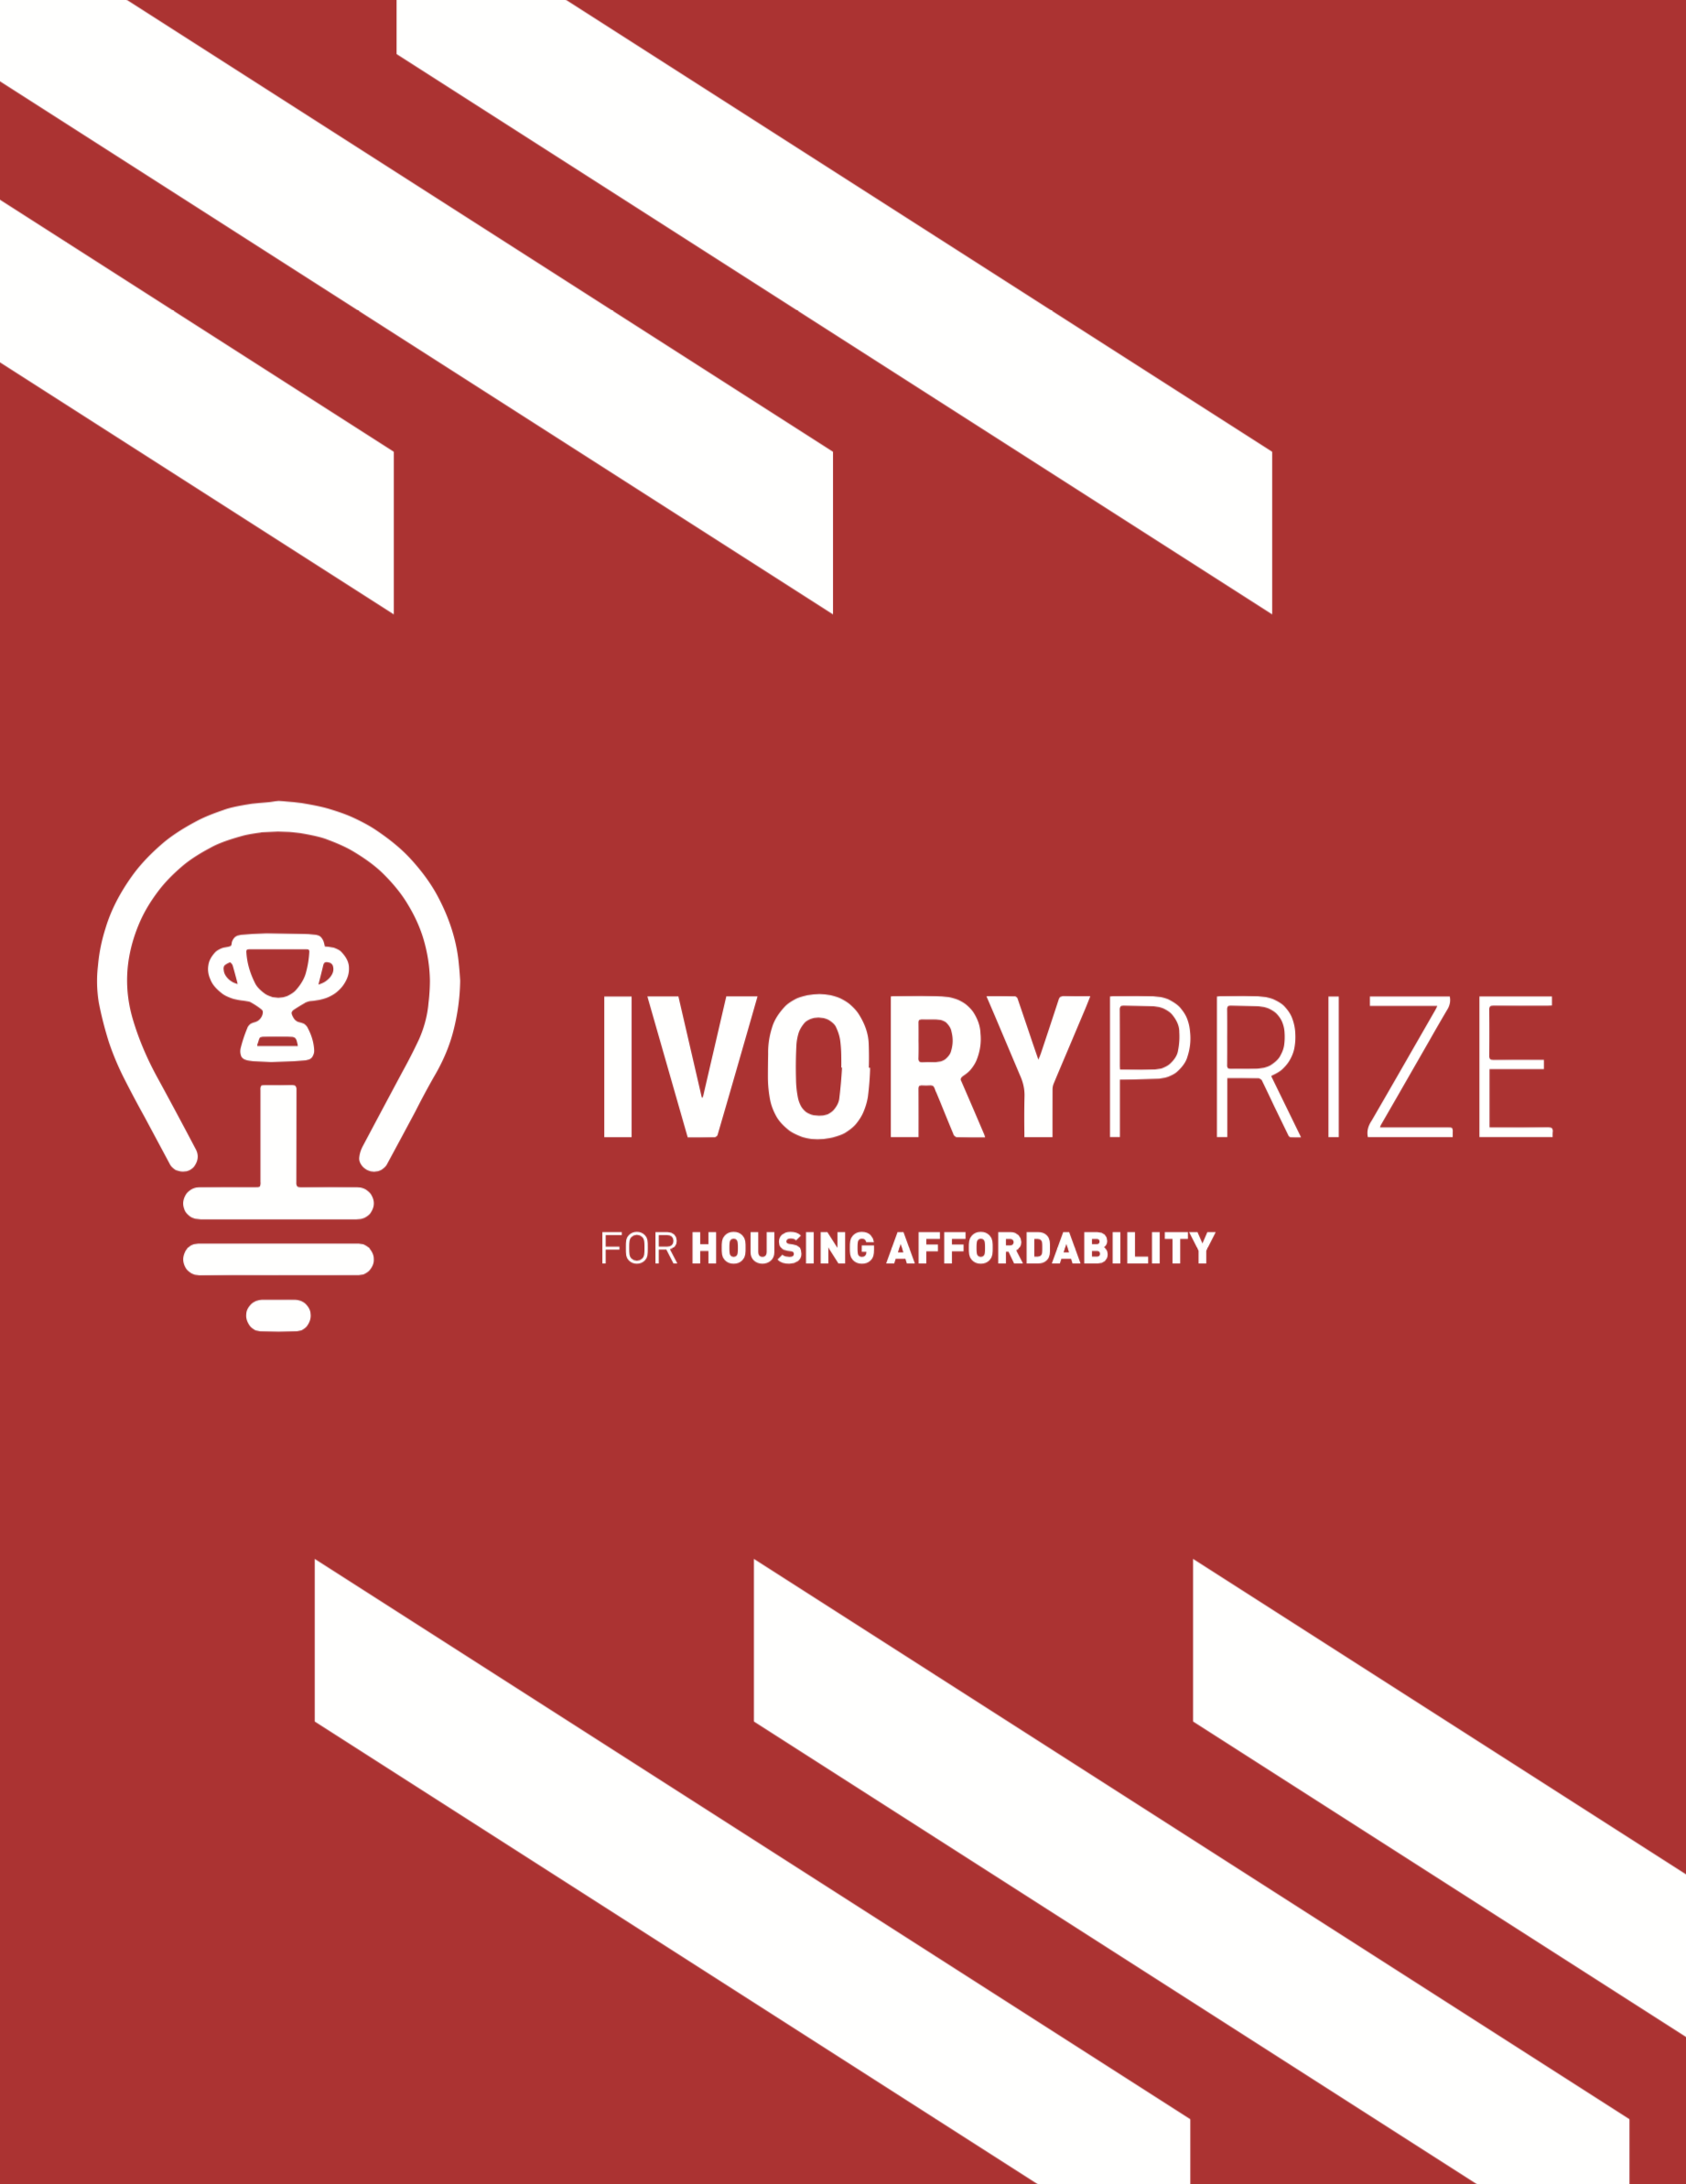 2019 Takeaways - Through the Ivory Prize process, we have learned that a key part of the prescription is innovation - one step at a time. Read about our winners and the first round of insights.